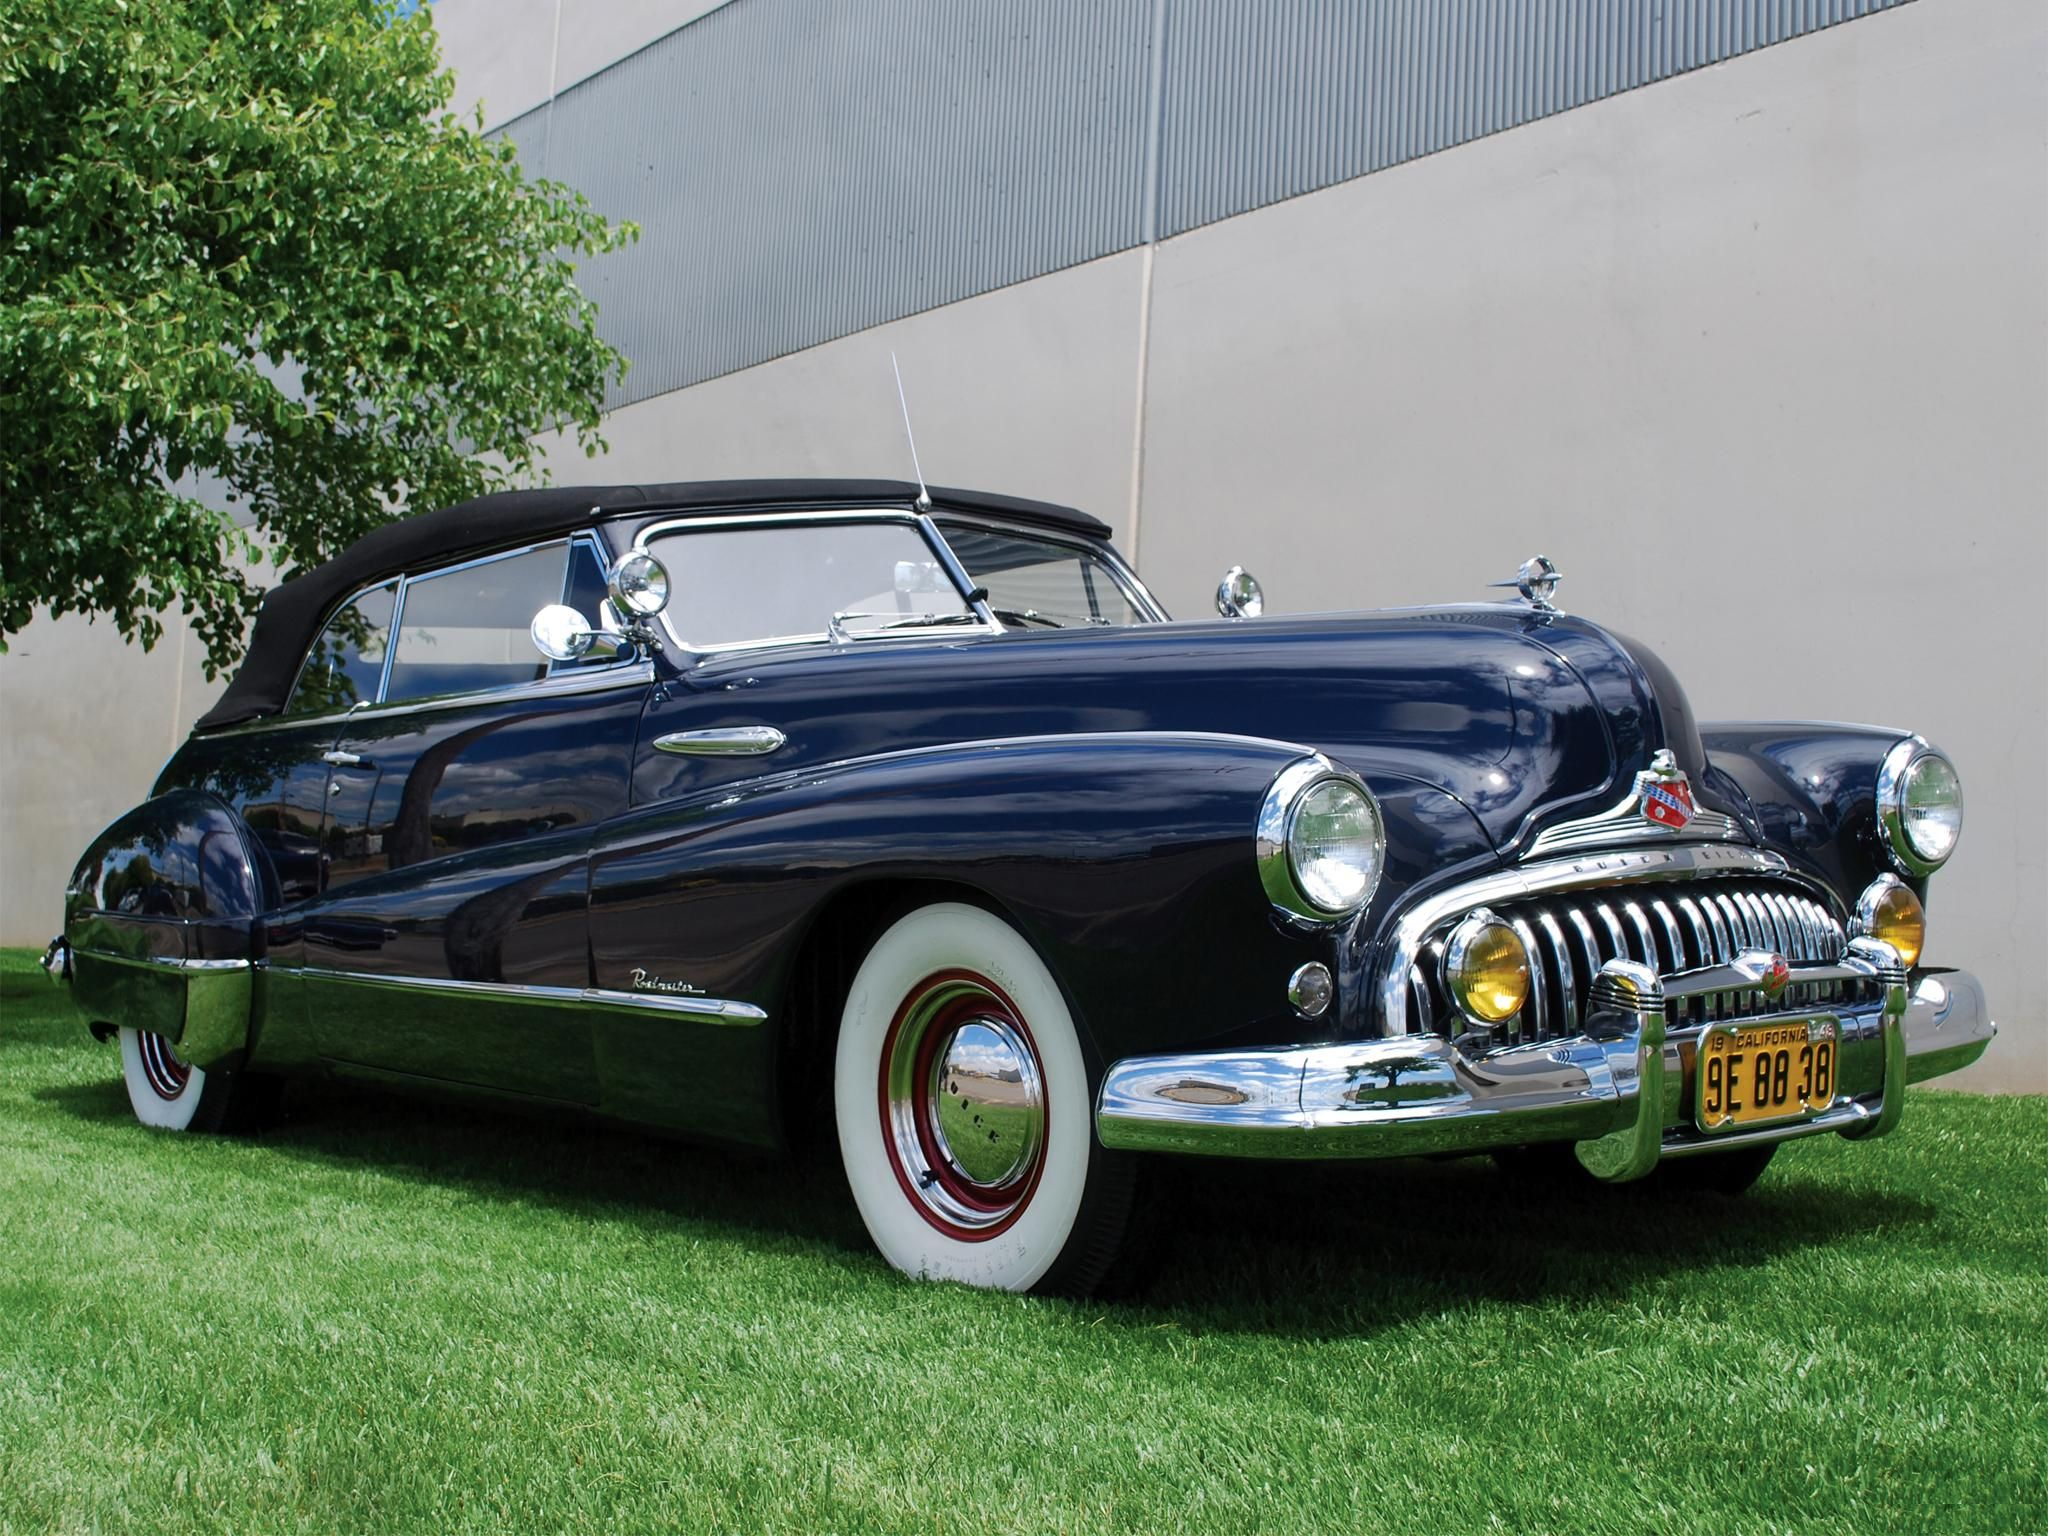 1948 buick roadmaster convertible one of the first cars i remember well driving around